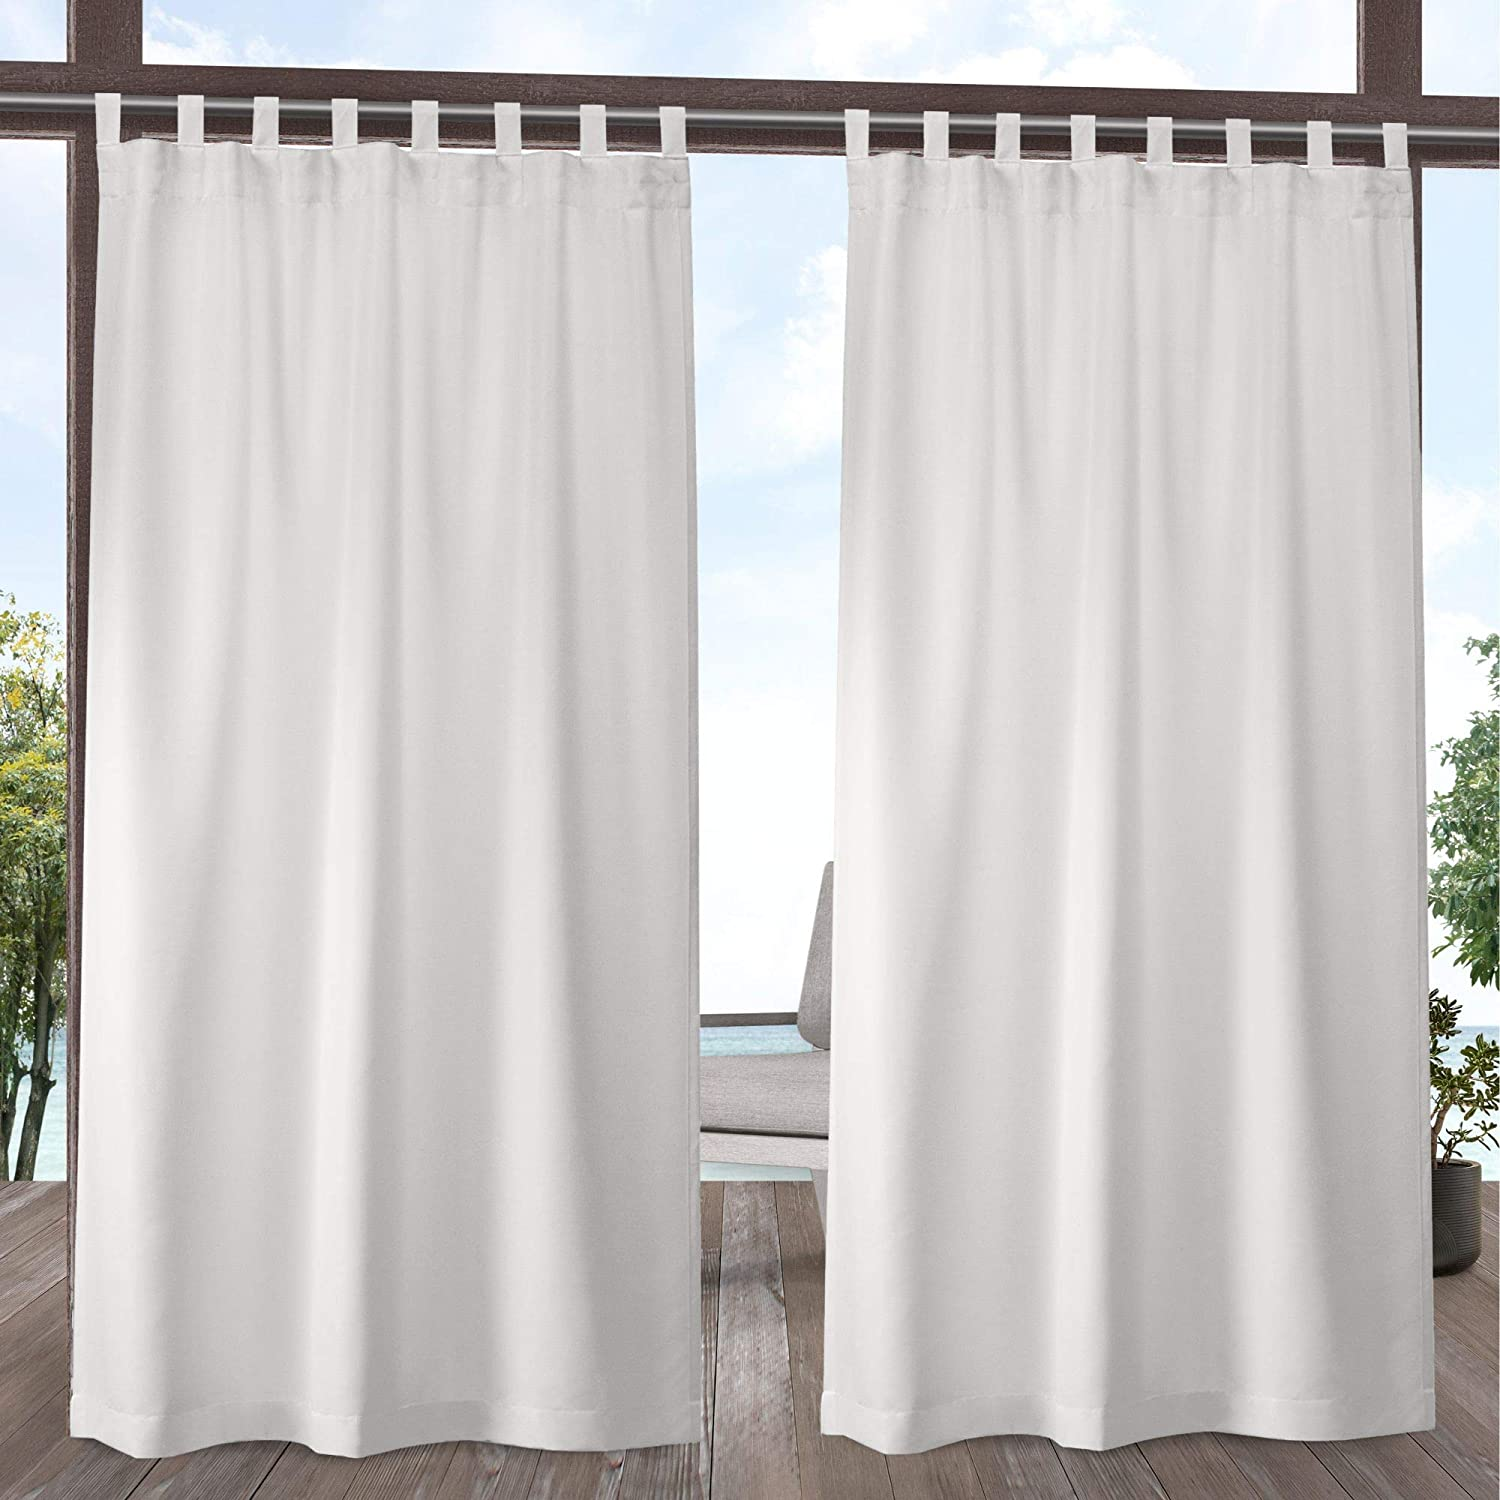 Exclusive Home Curtains Indoor/Outdoor Solid Cabana Tab Top Curtain Panel Pair, 54x84, Vanilla